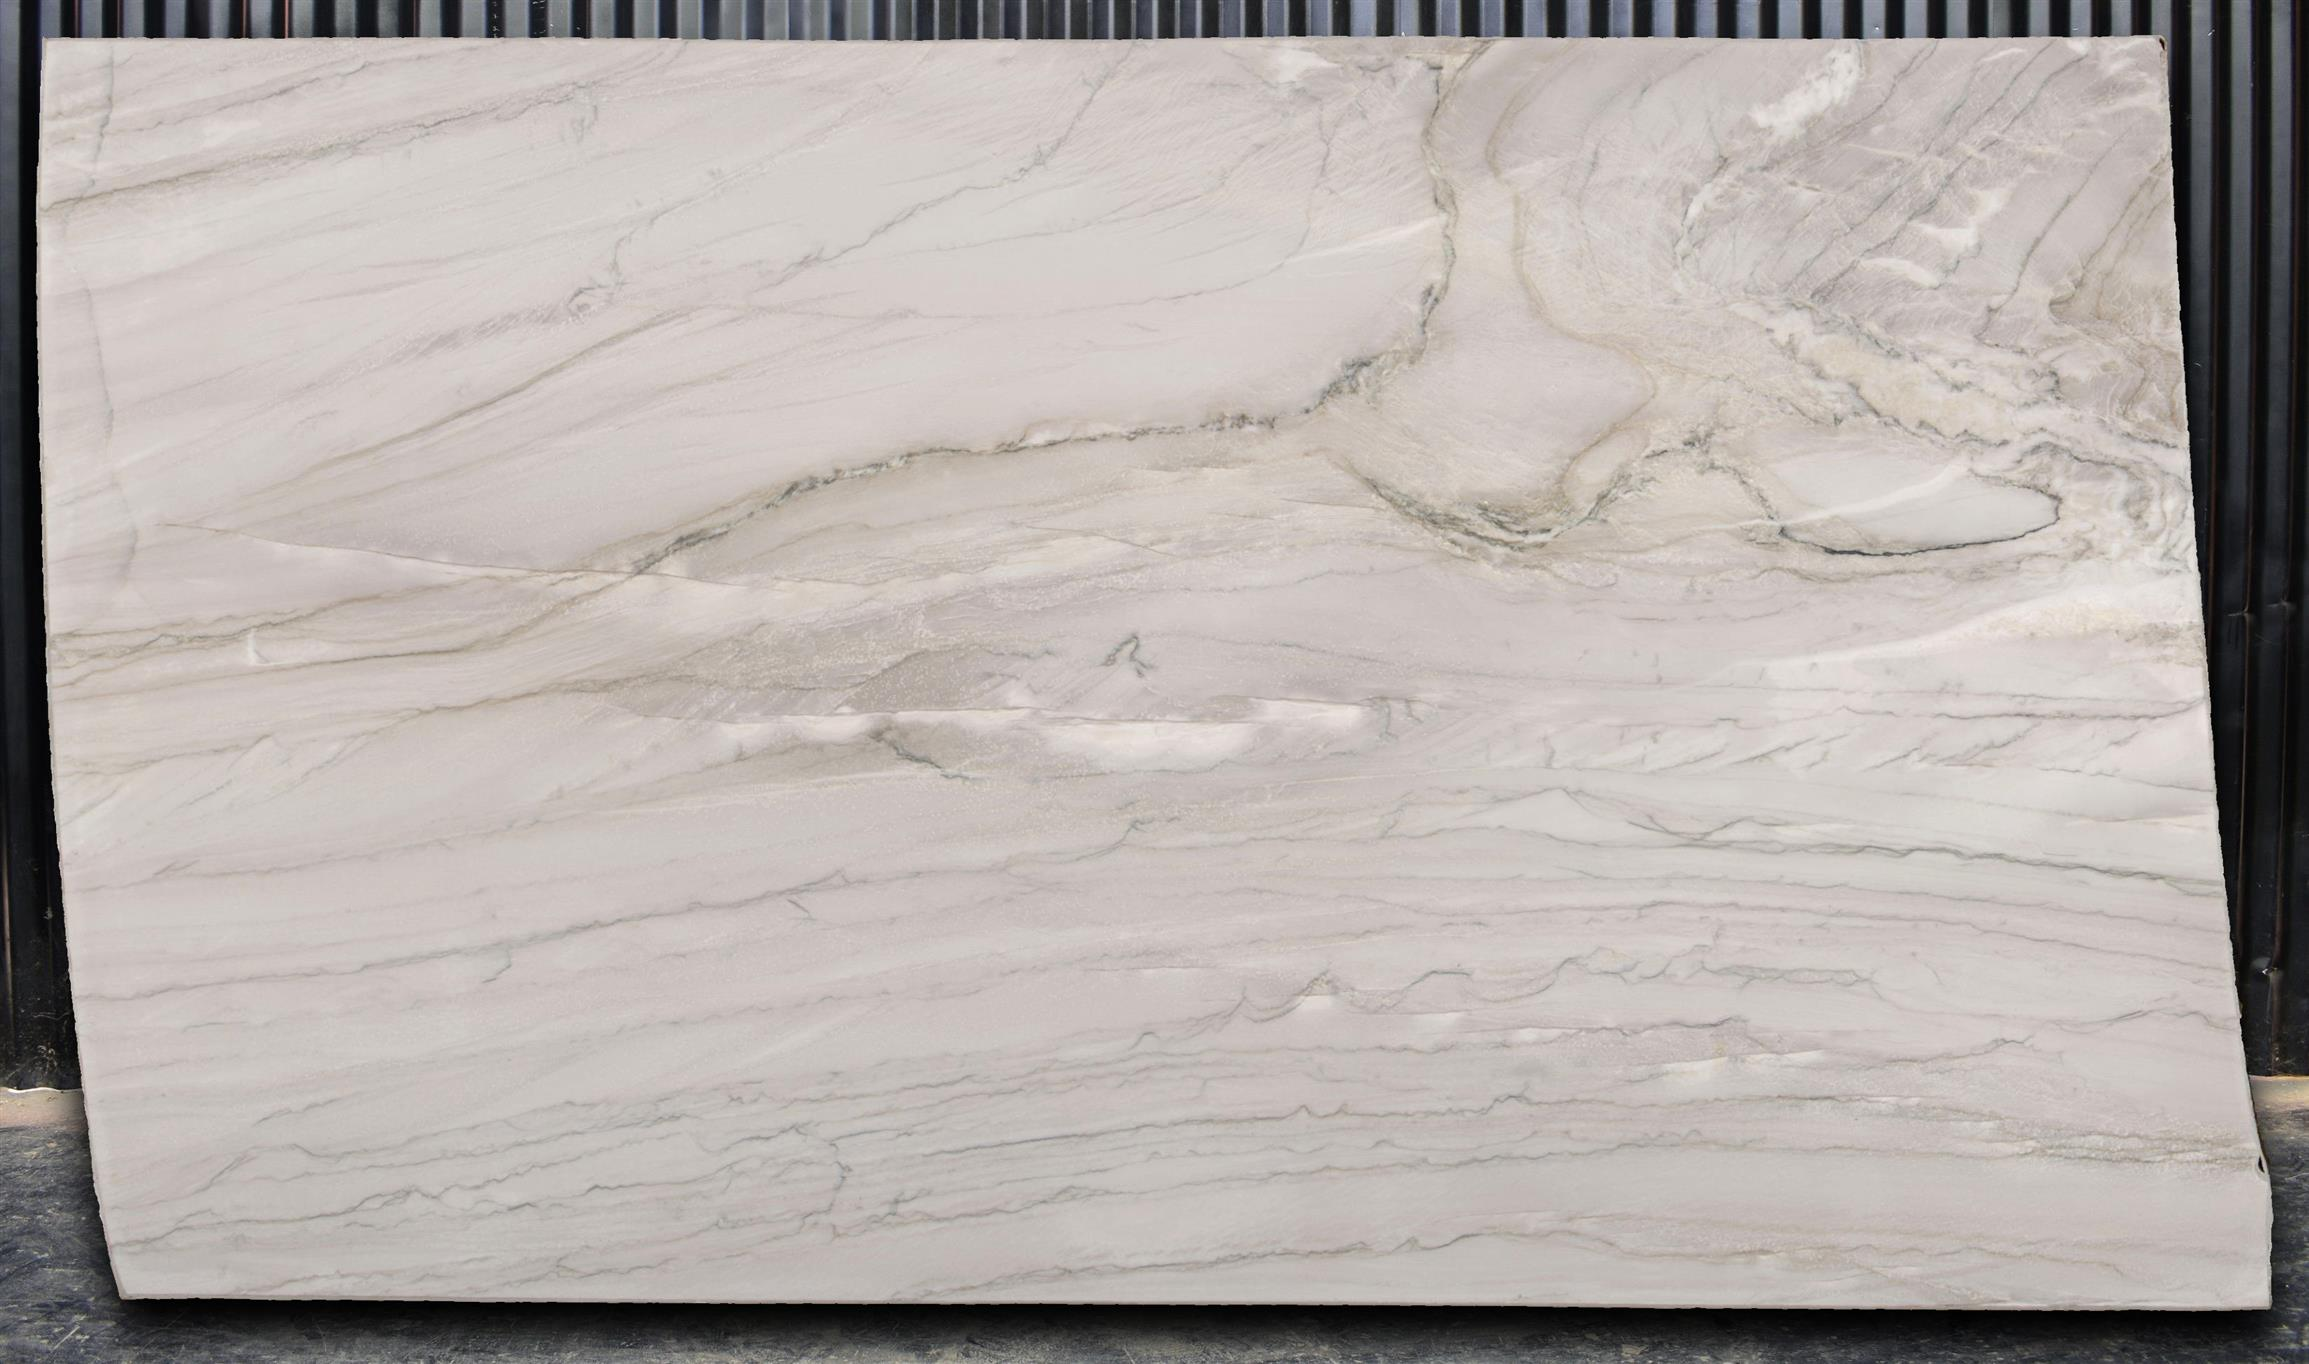 https://palmbeachcountertops.com/wp-content/uploads/2019/02/Mykonos-Quartzite-New.jpg